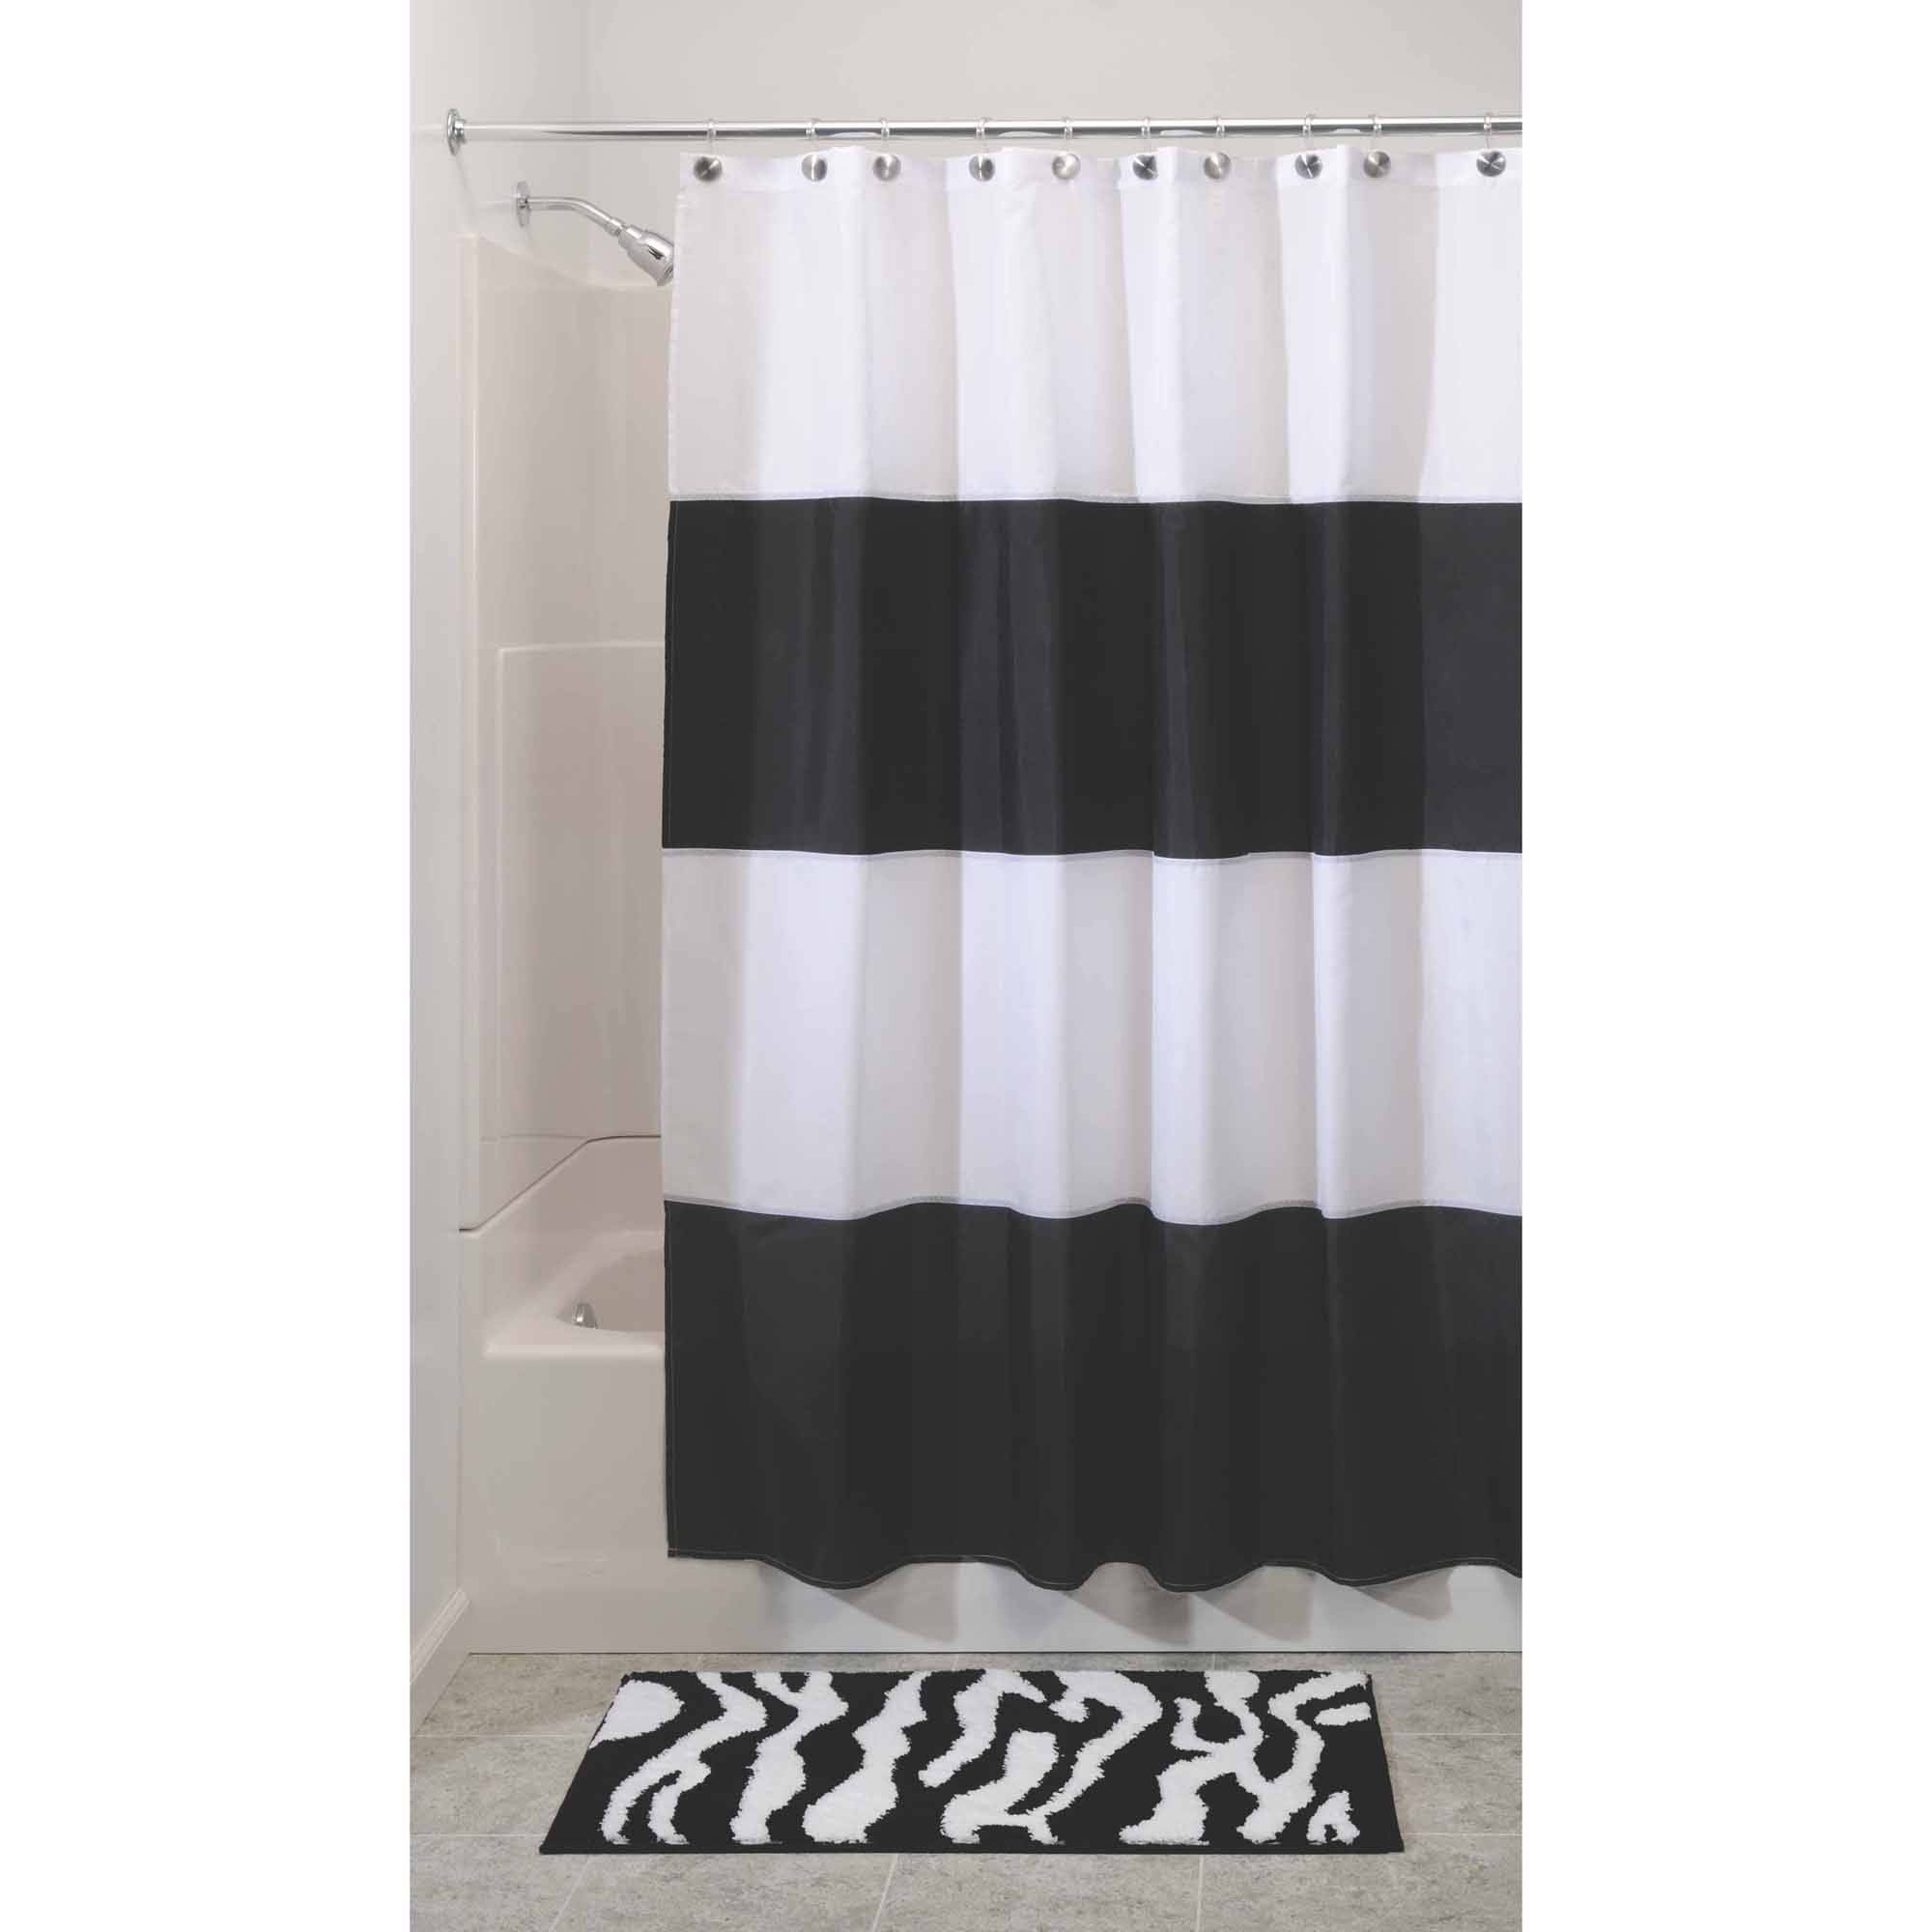 black white magnets bathroom hotel window polyester impressive x on stripe translucent poly rings hookless voile throughout raised delightful shower flex its with table snap escape and dimensions a liner curtains curtain chrome